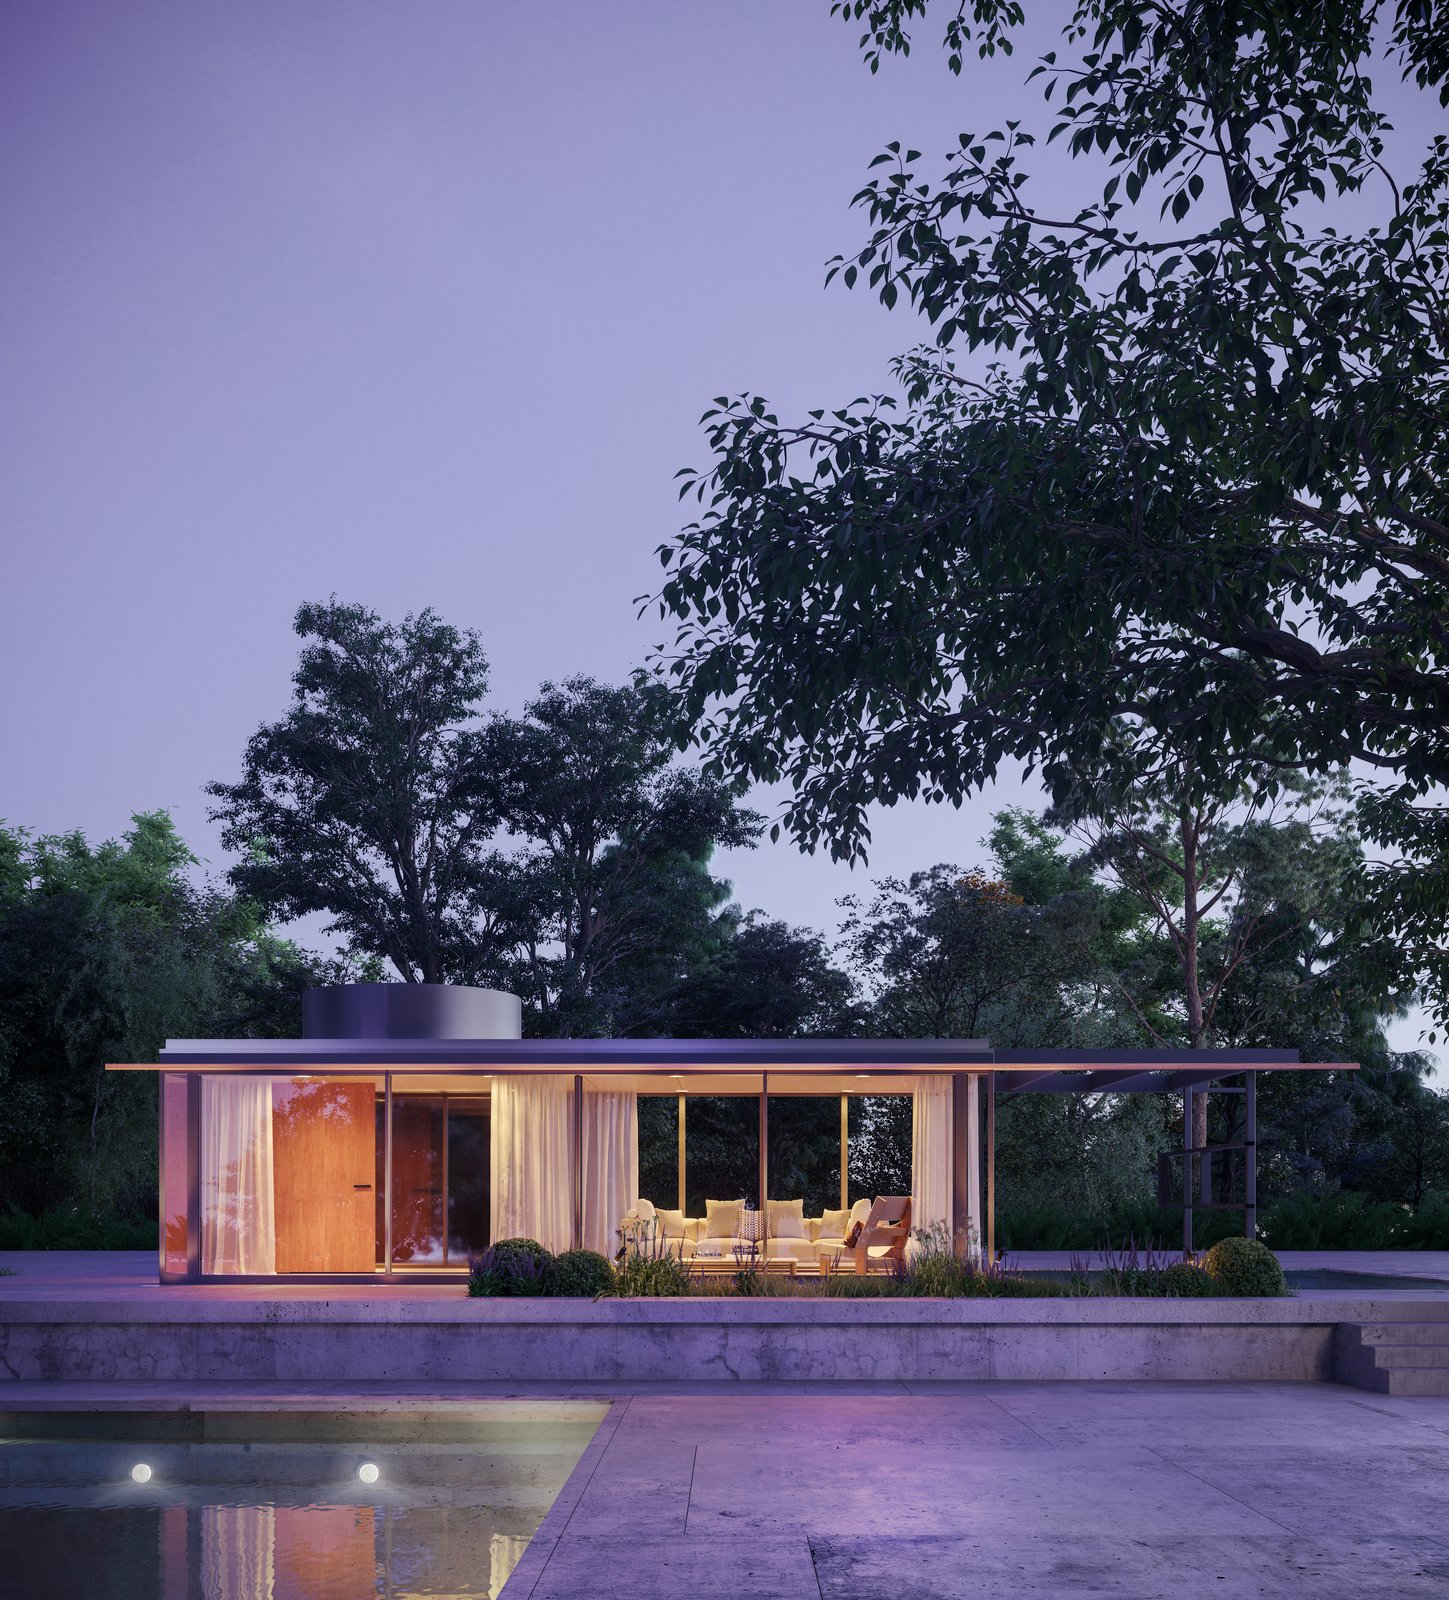 The VDL Penthouse measures 39' x 12', and it's a direct replica of the penthouse built for Neutra's VDL Research Home.